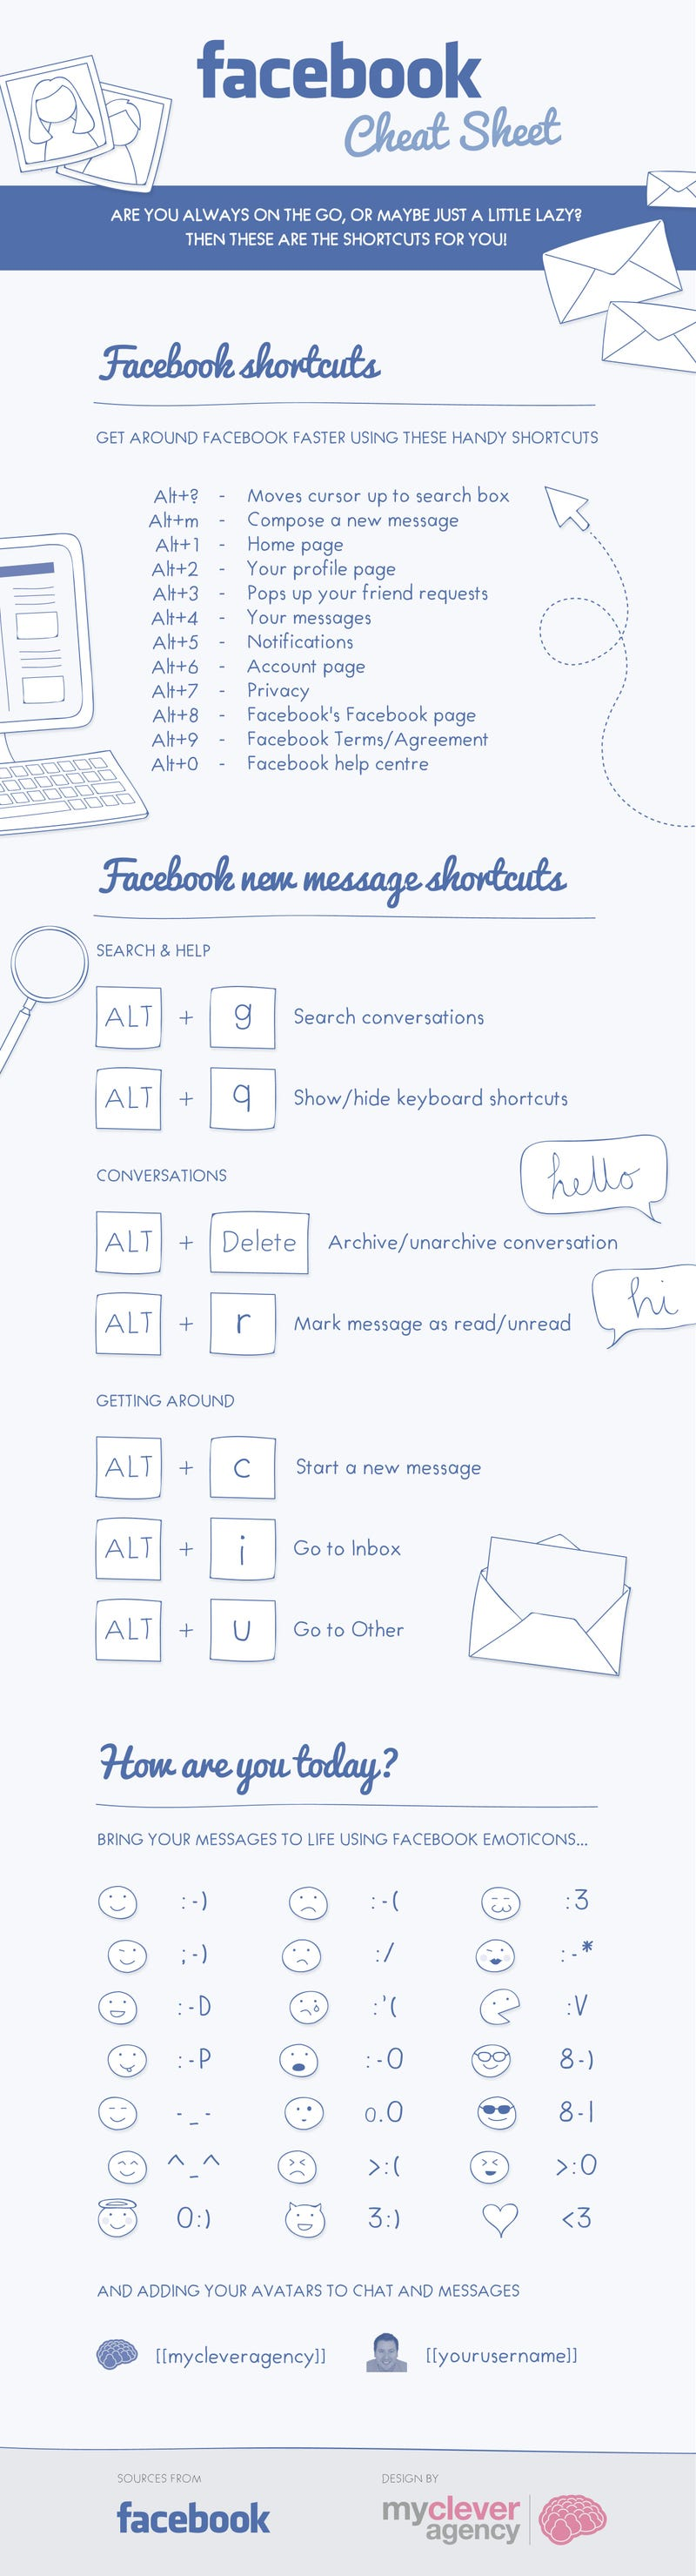 The Facebook Cheat Sheet Shows All the Facebook Keyboard